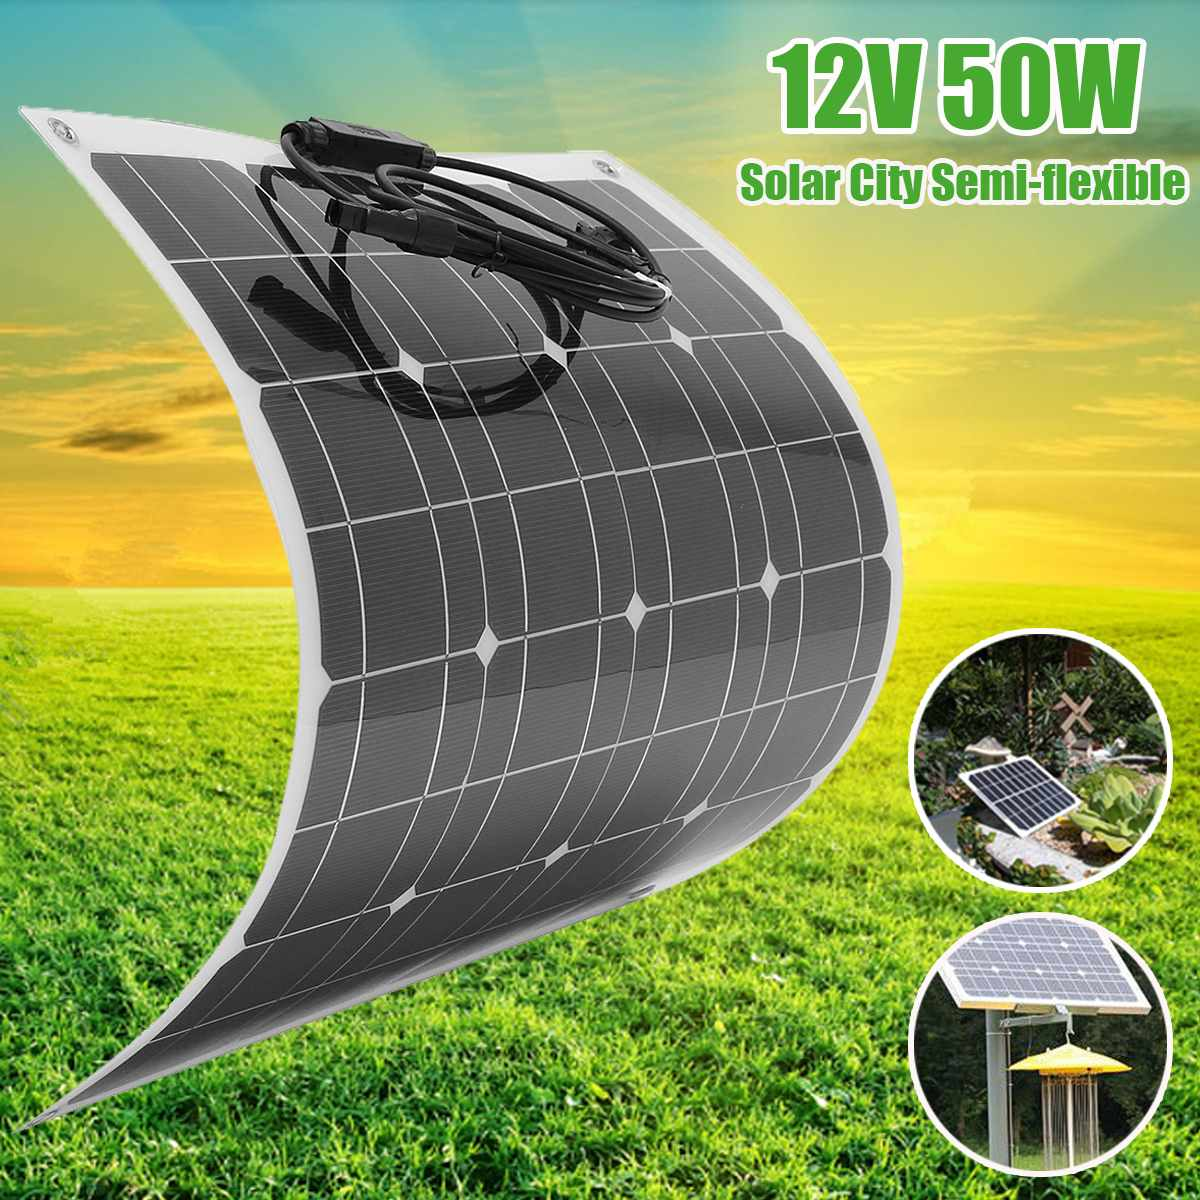 KINCO 60W/12V Semi-Flexible Solar Panel Monocrystalline Silicon Solar System Power Supply For Car Battery Charger sunpower flexible solar panel 12v 100w monocrystalline semi flexible solar panel 100w solar cell 21